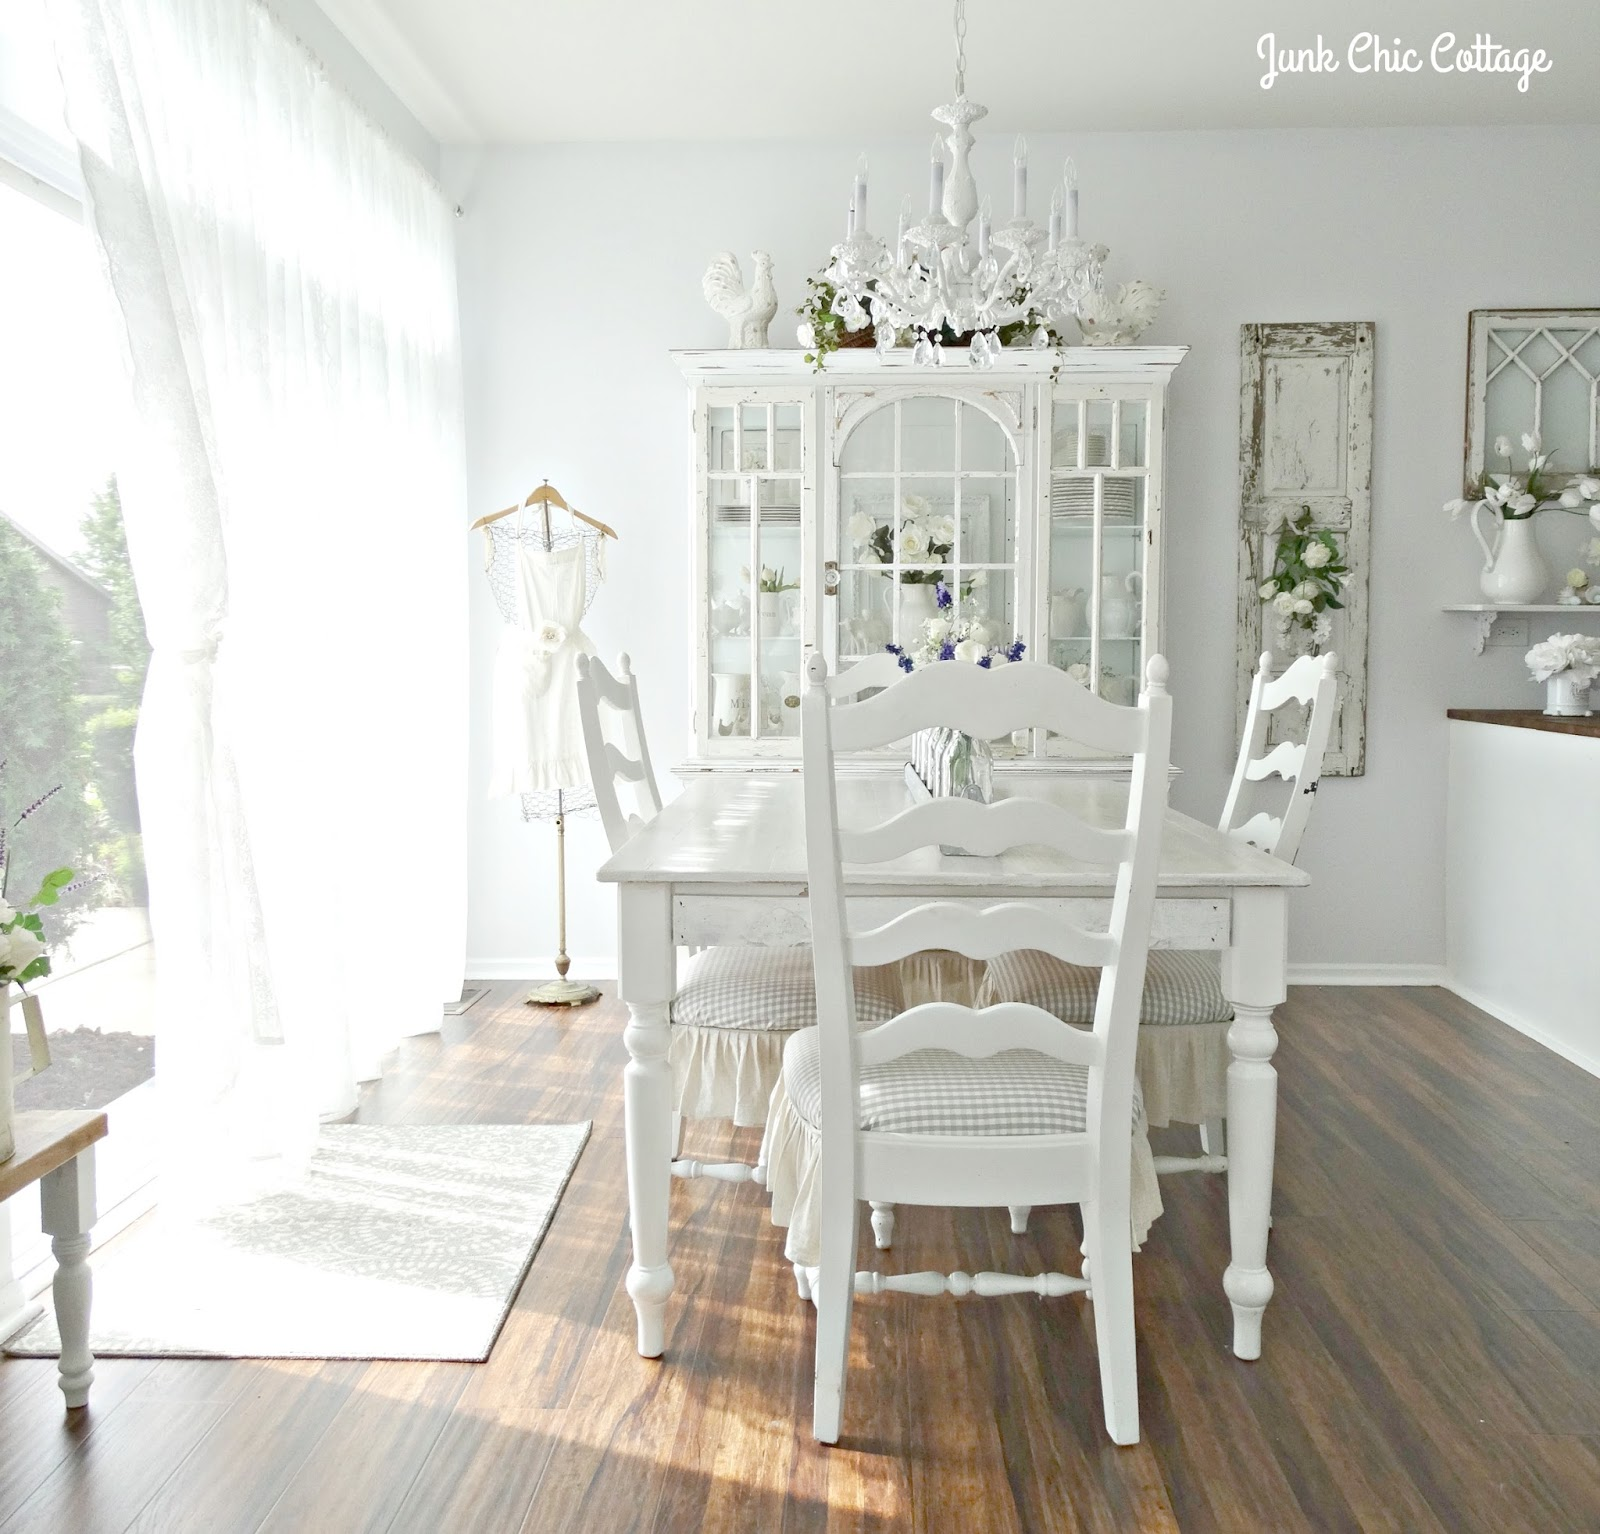 Cottage Dining Room: Junk Chic Cottage: Dining Room Reveal